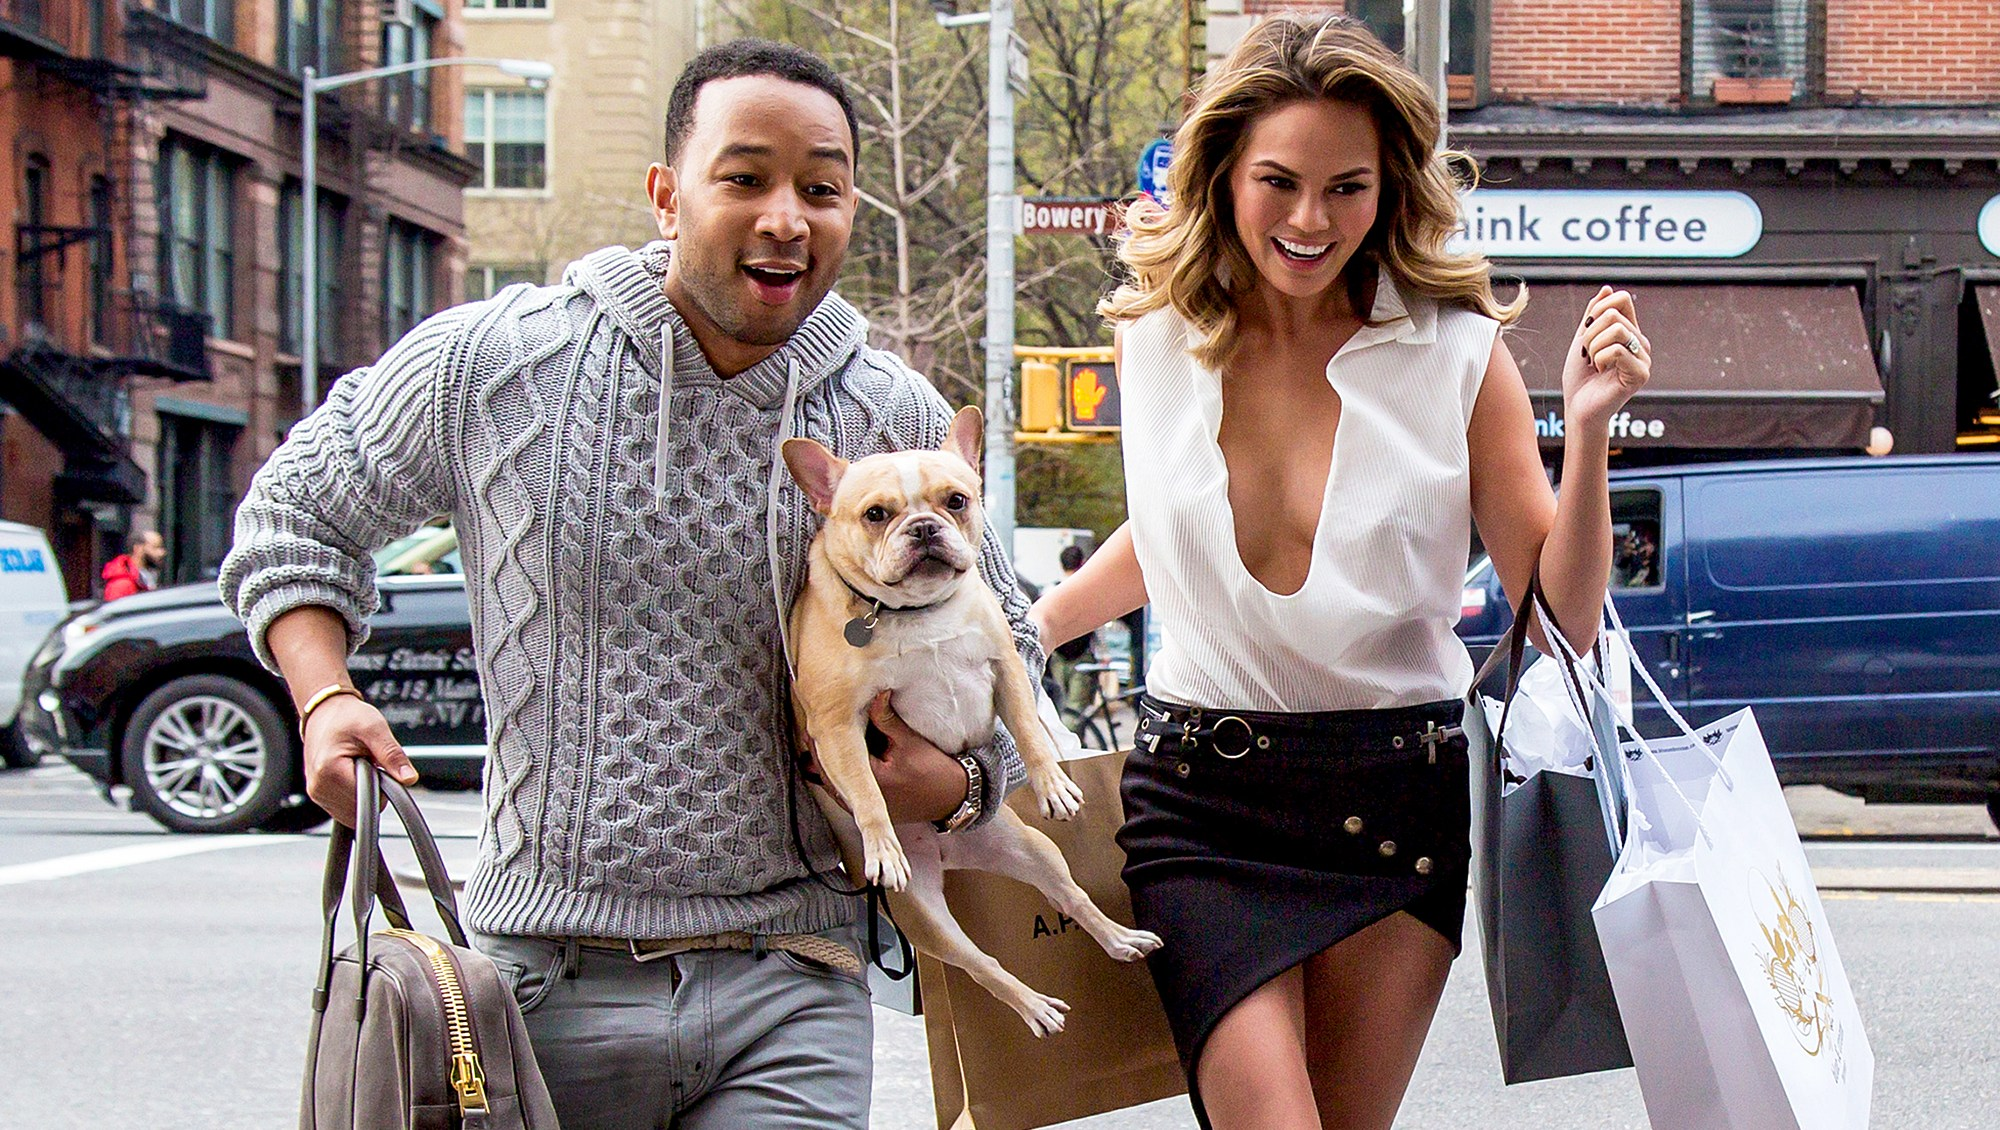 John Legend and Chrissy Teigen with their dog during a photo shoot in New York City.